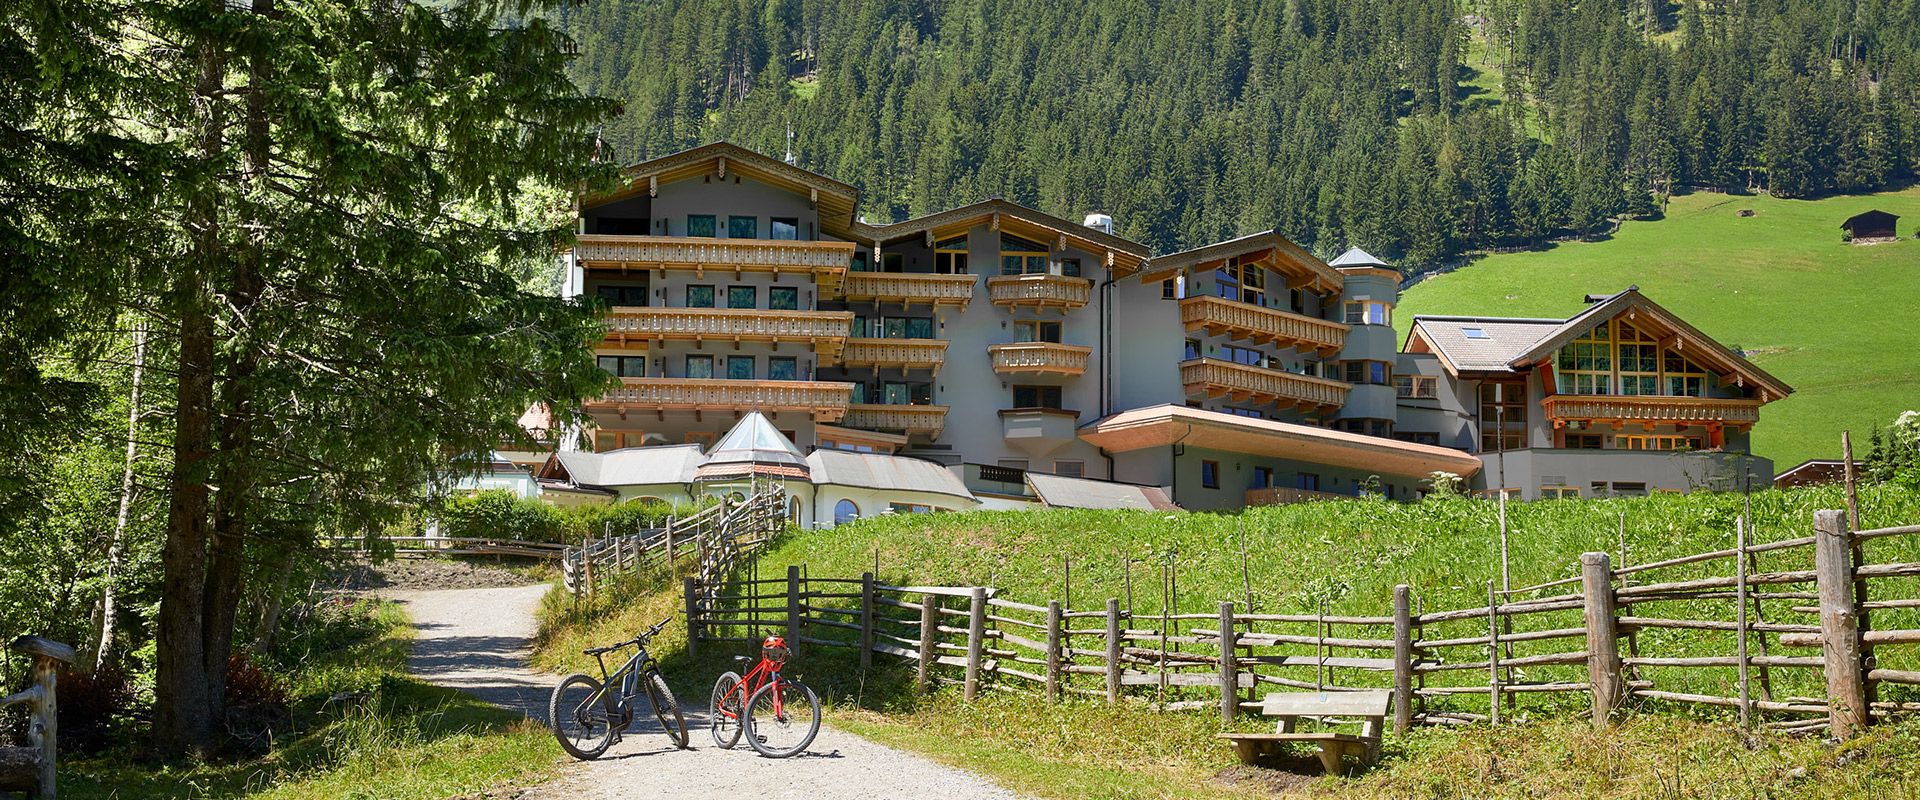 Das Adler Inn - Tyrol Mountain Resort